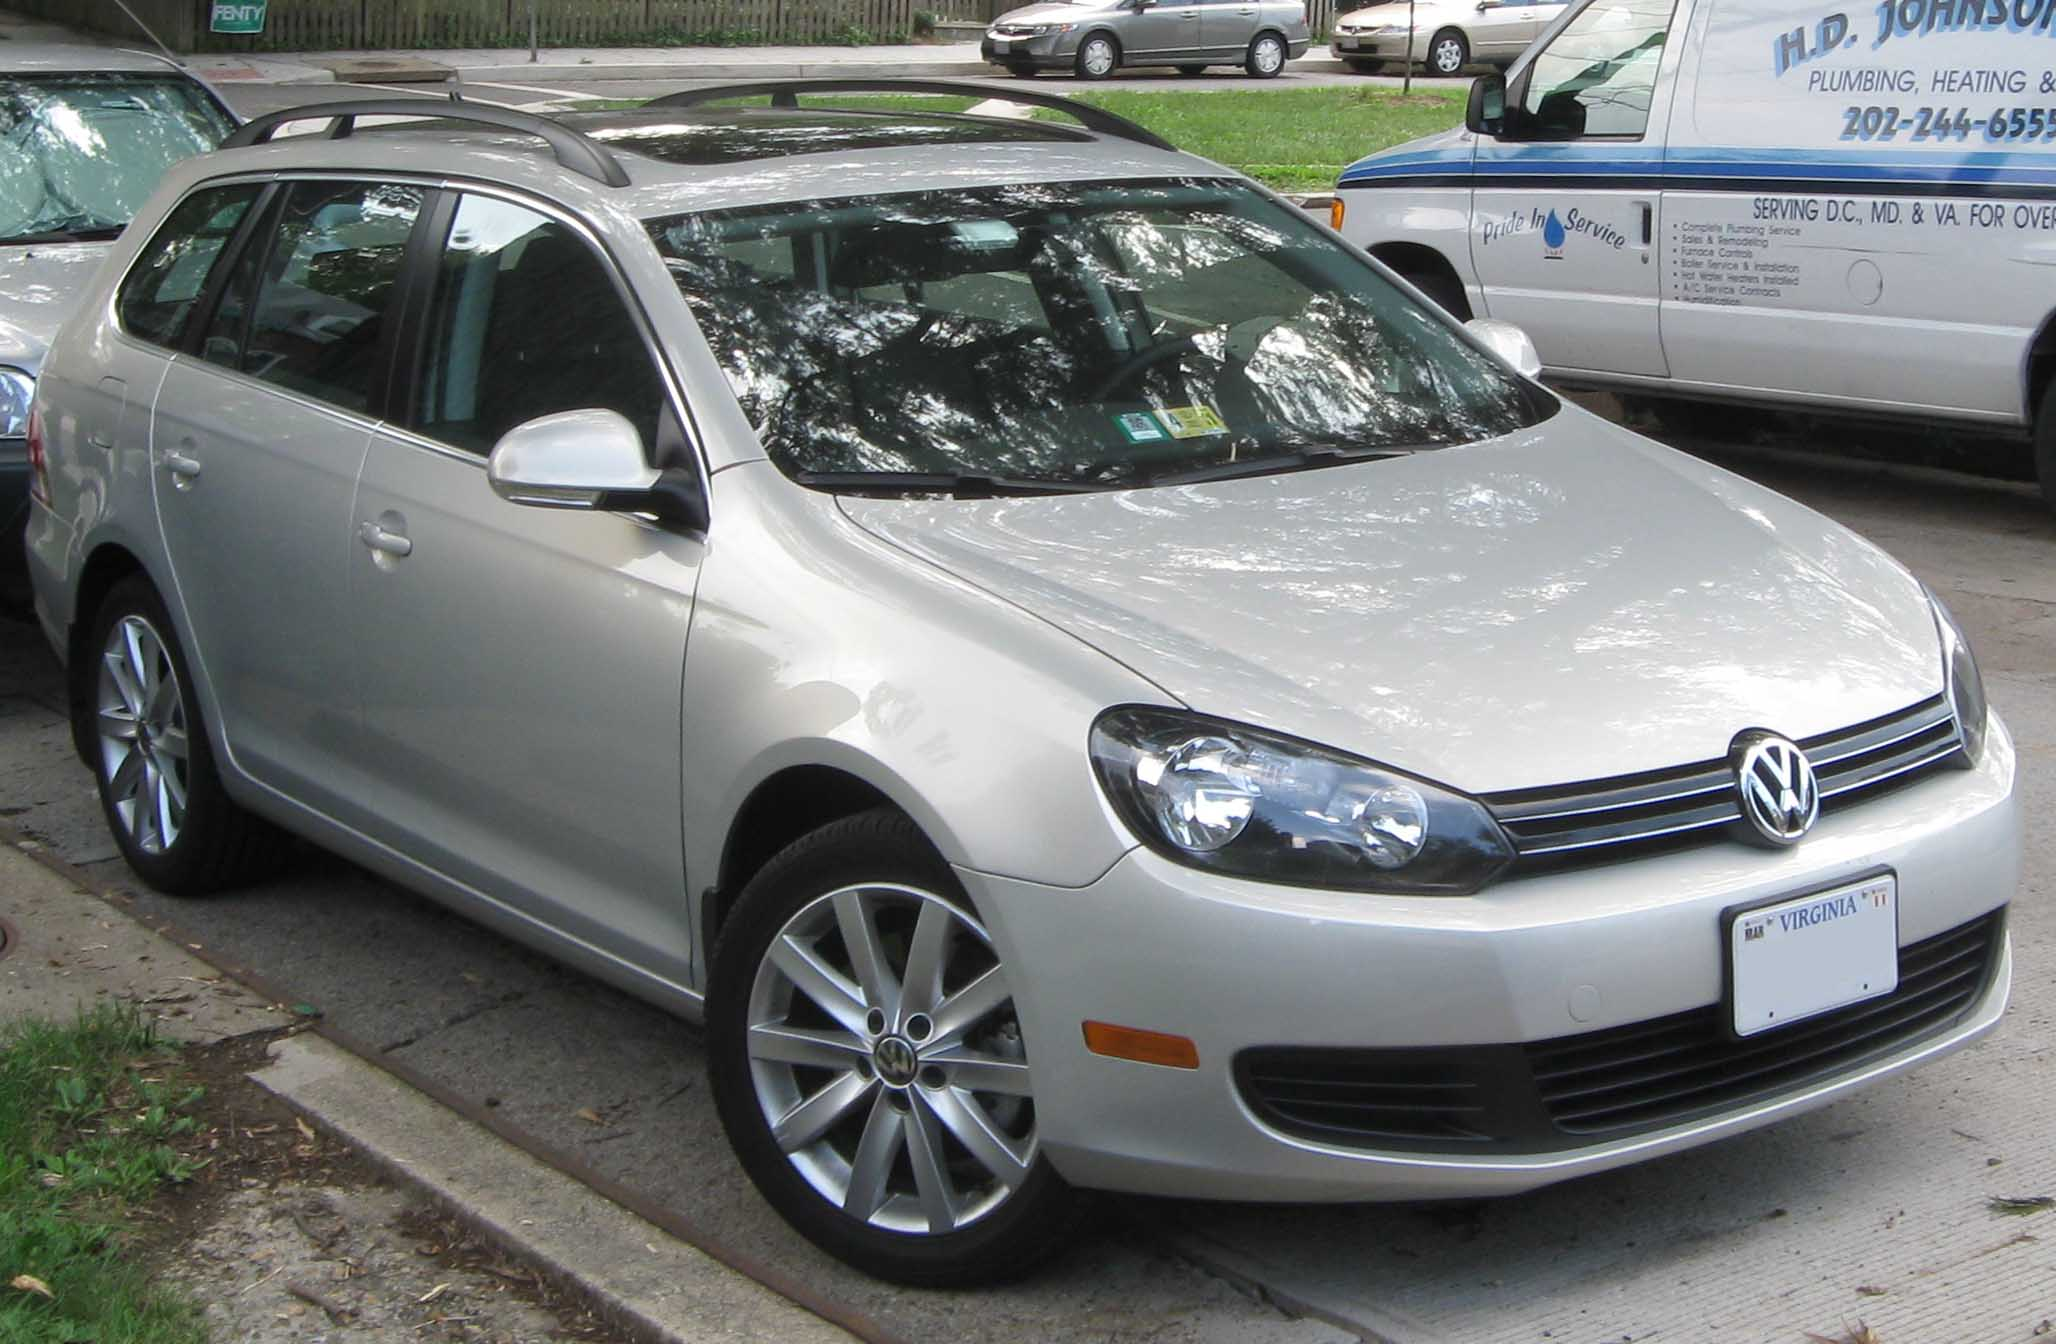 2010 Volkswagen Jetta Sportwagen Tdi Review | New Cars Review For 2013